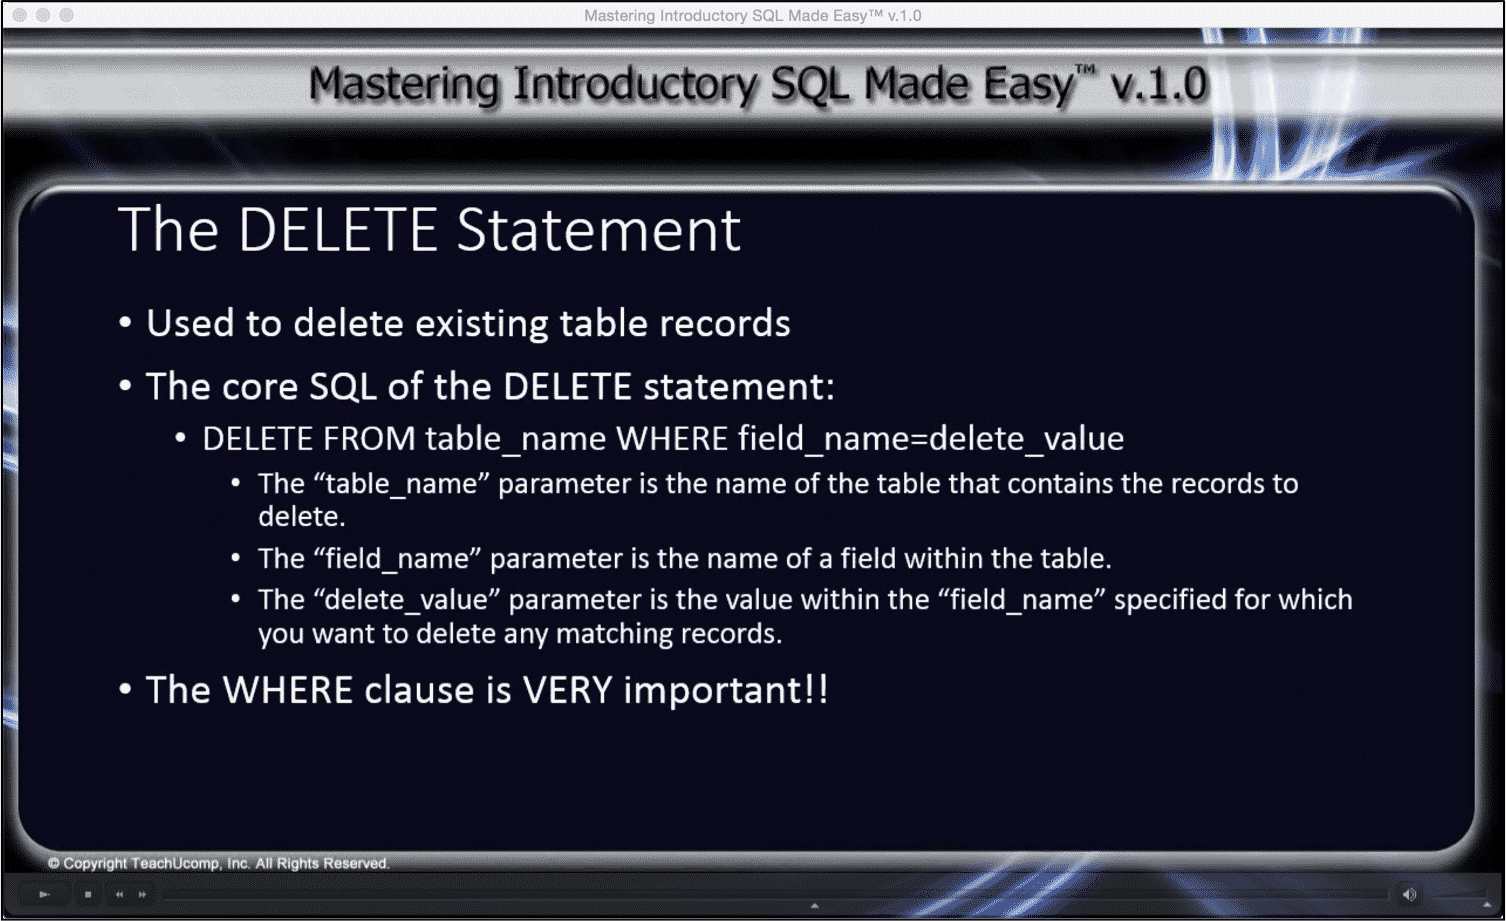 When execute the DELETE command,the DBMS logs all removed rows. This means  it is easier to recover from a mistake, than it would a mistaken TRUNCATE.